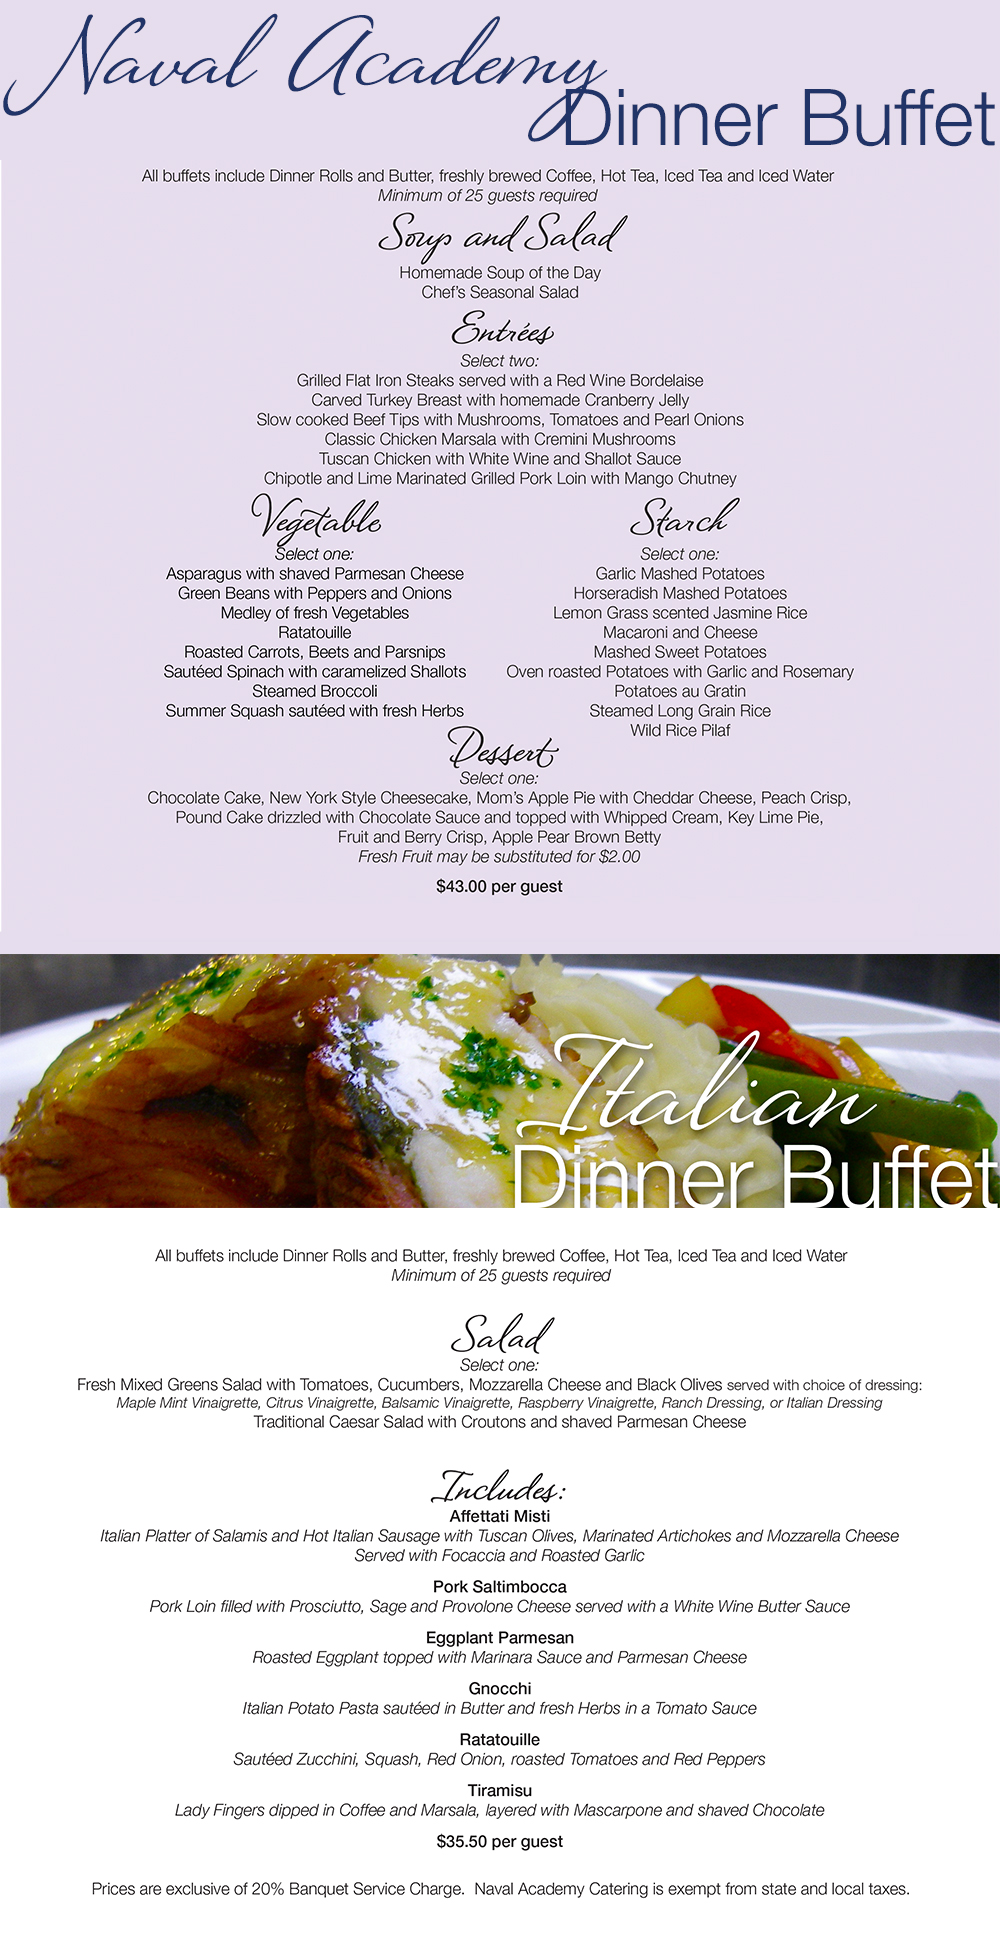 Dinner Buffet Selections 1000px